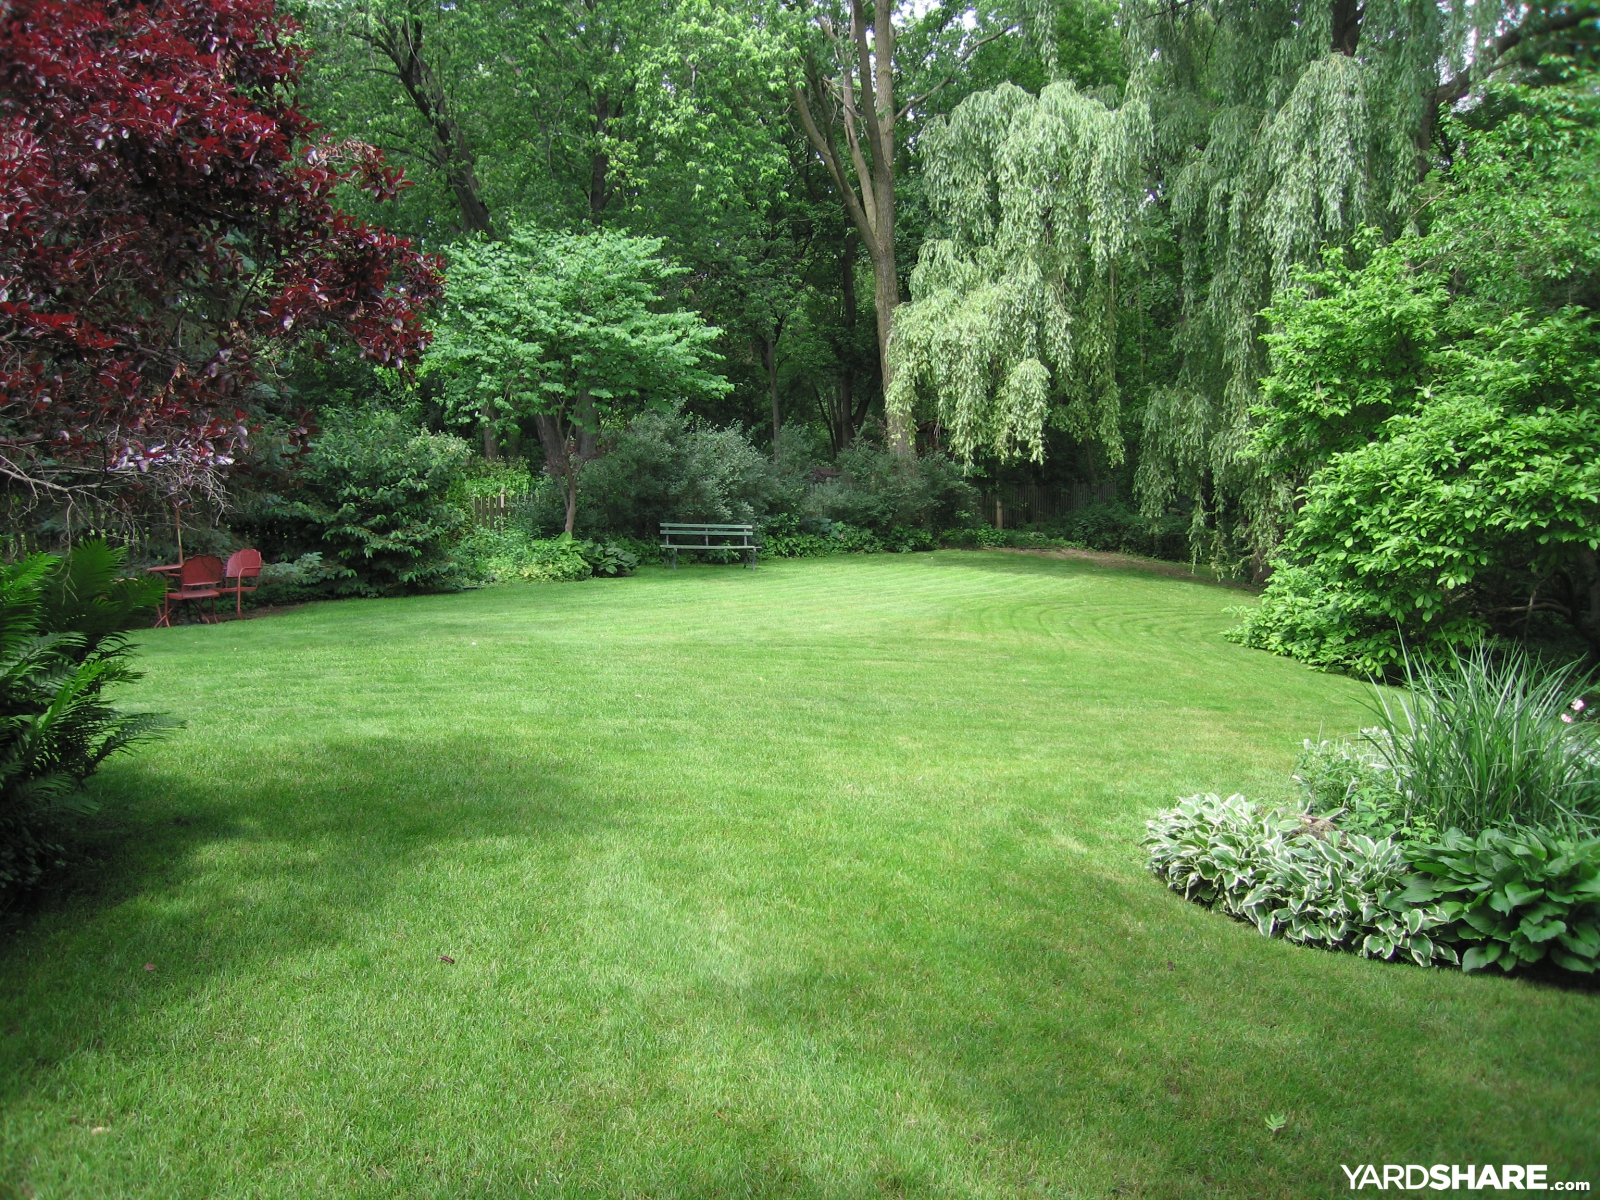 landscaping ideas backyard at whispering oaks